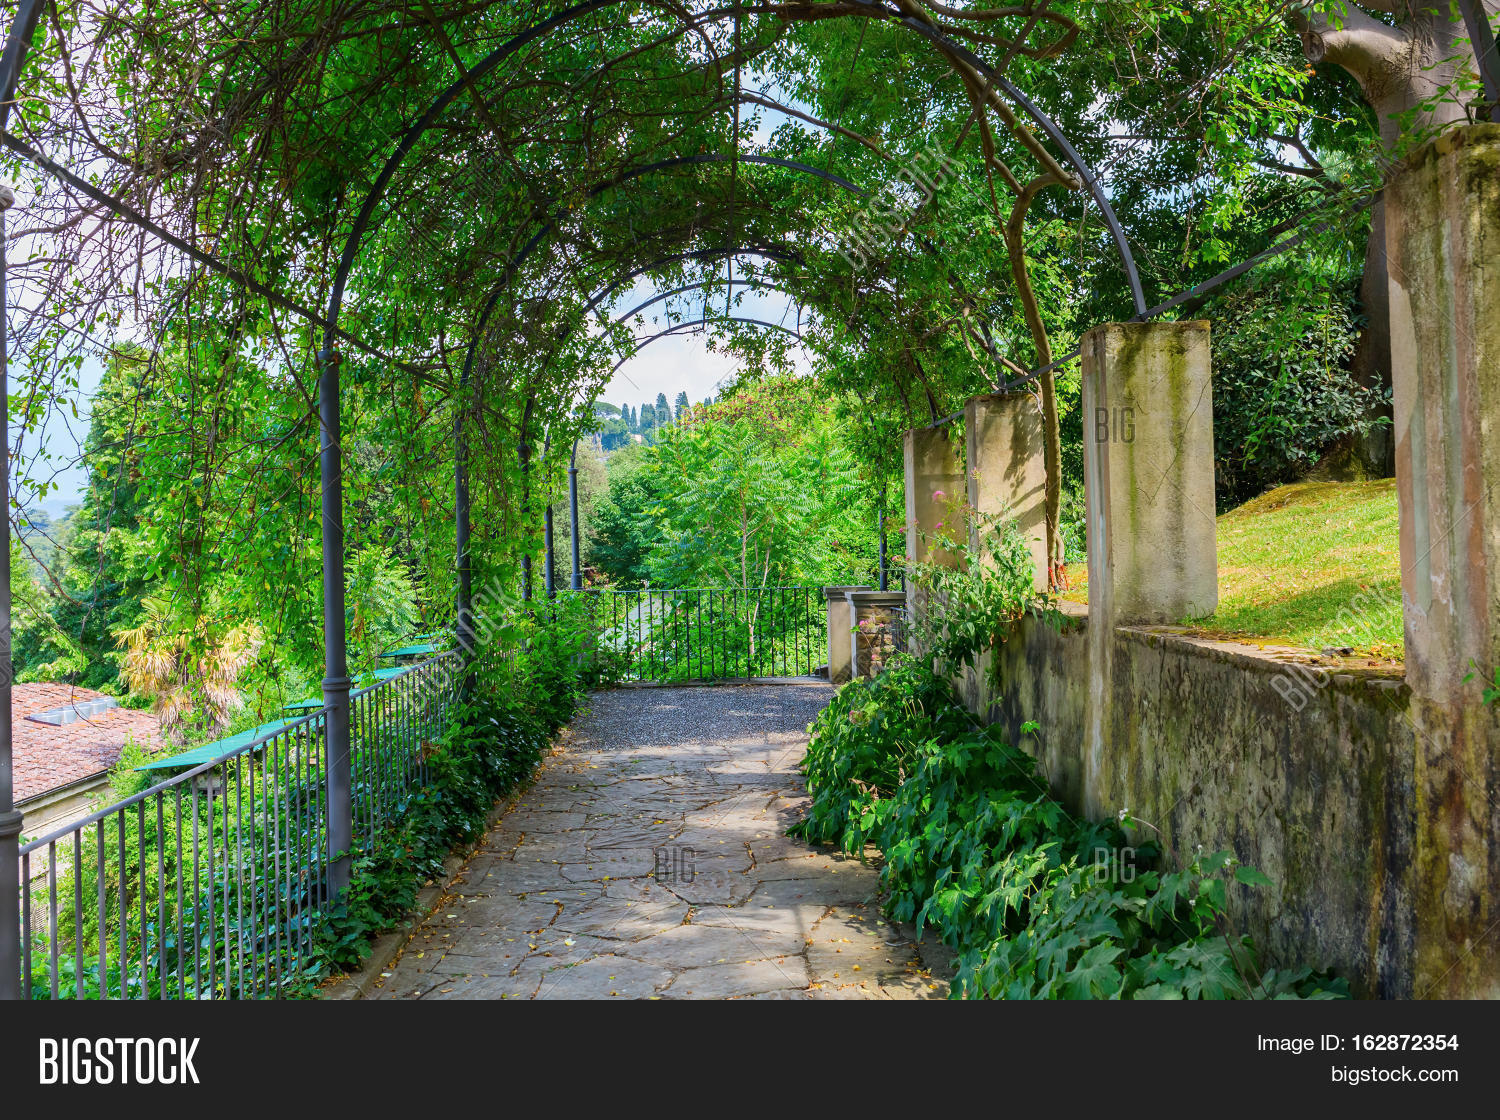 Tree Tunnel Giardino Image Photo Free Trial Bigstock